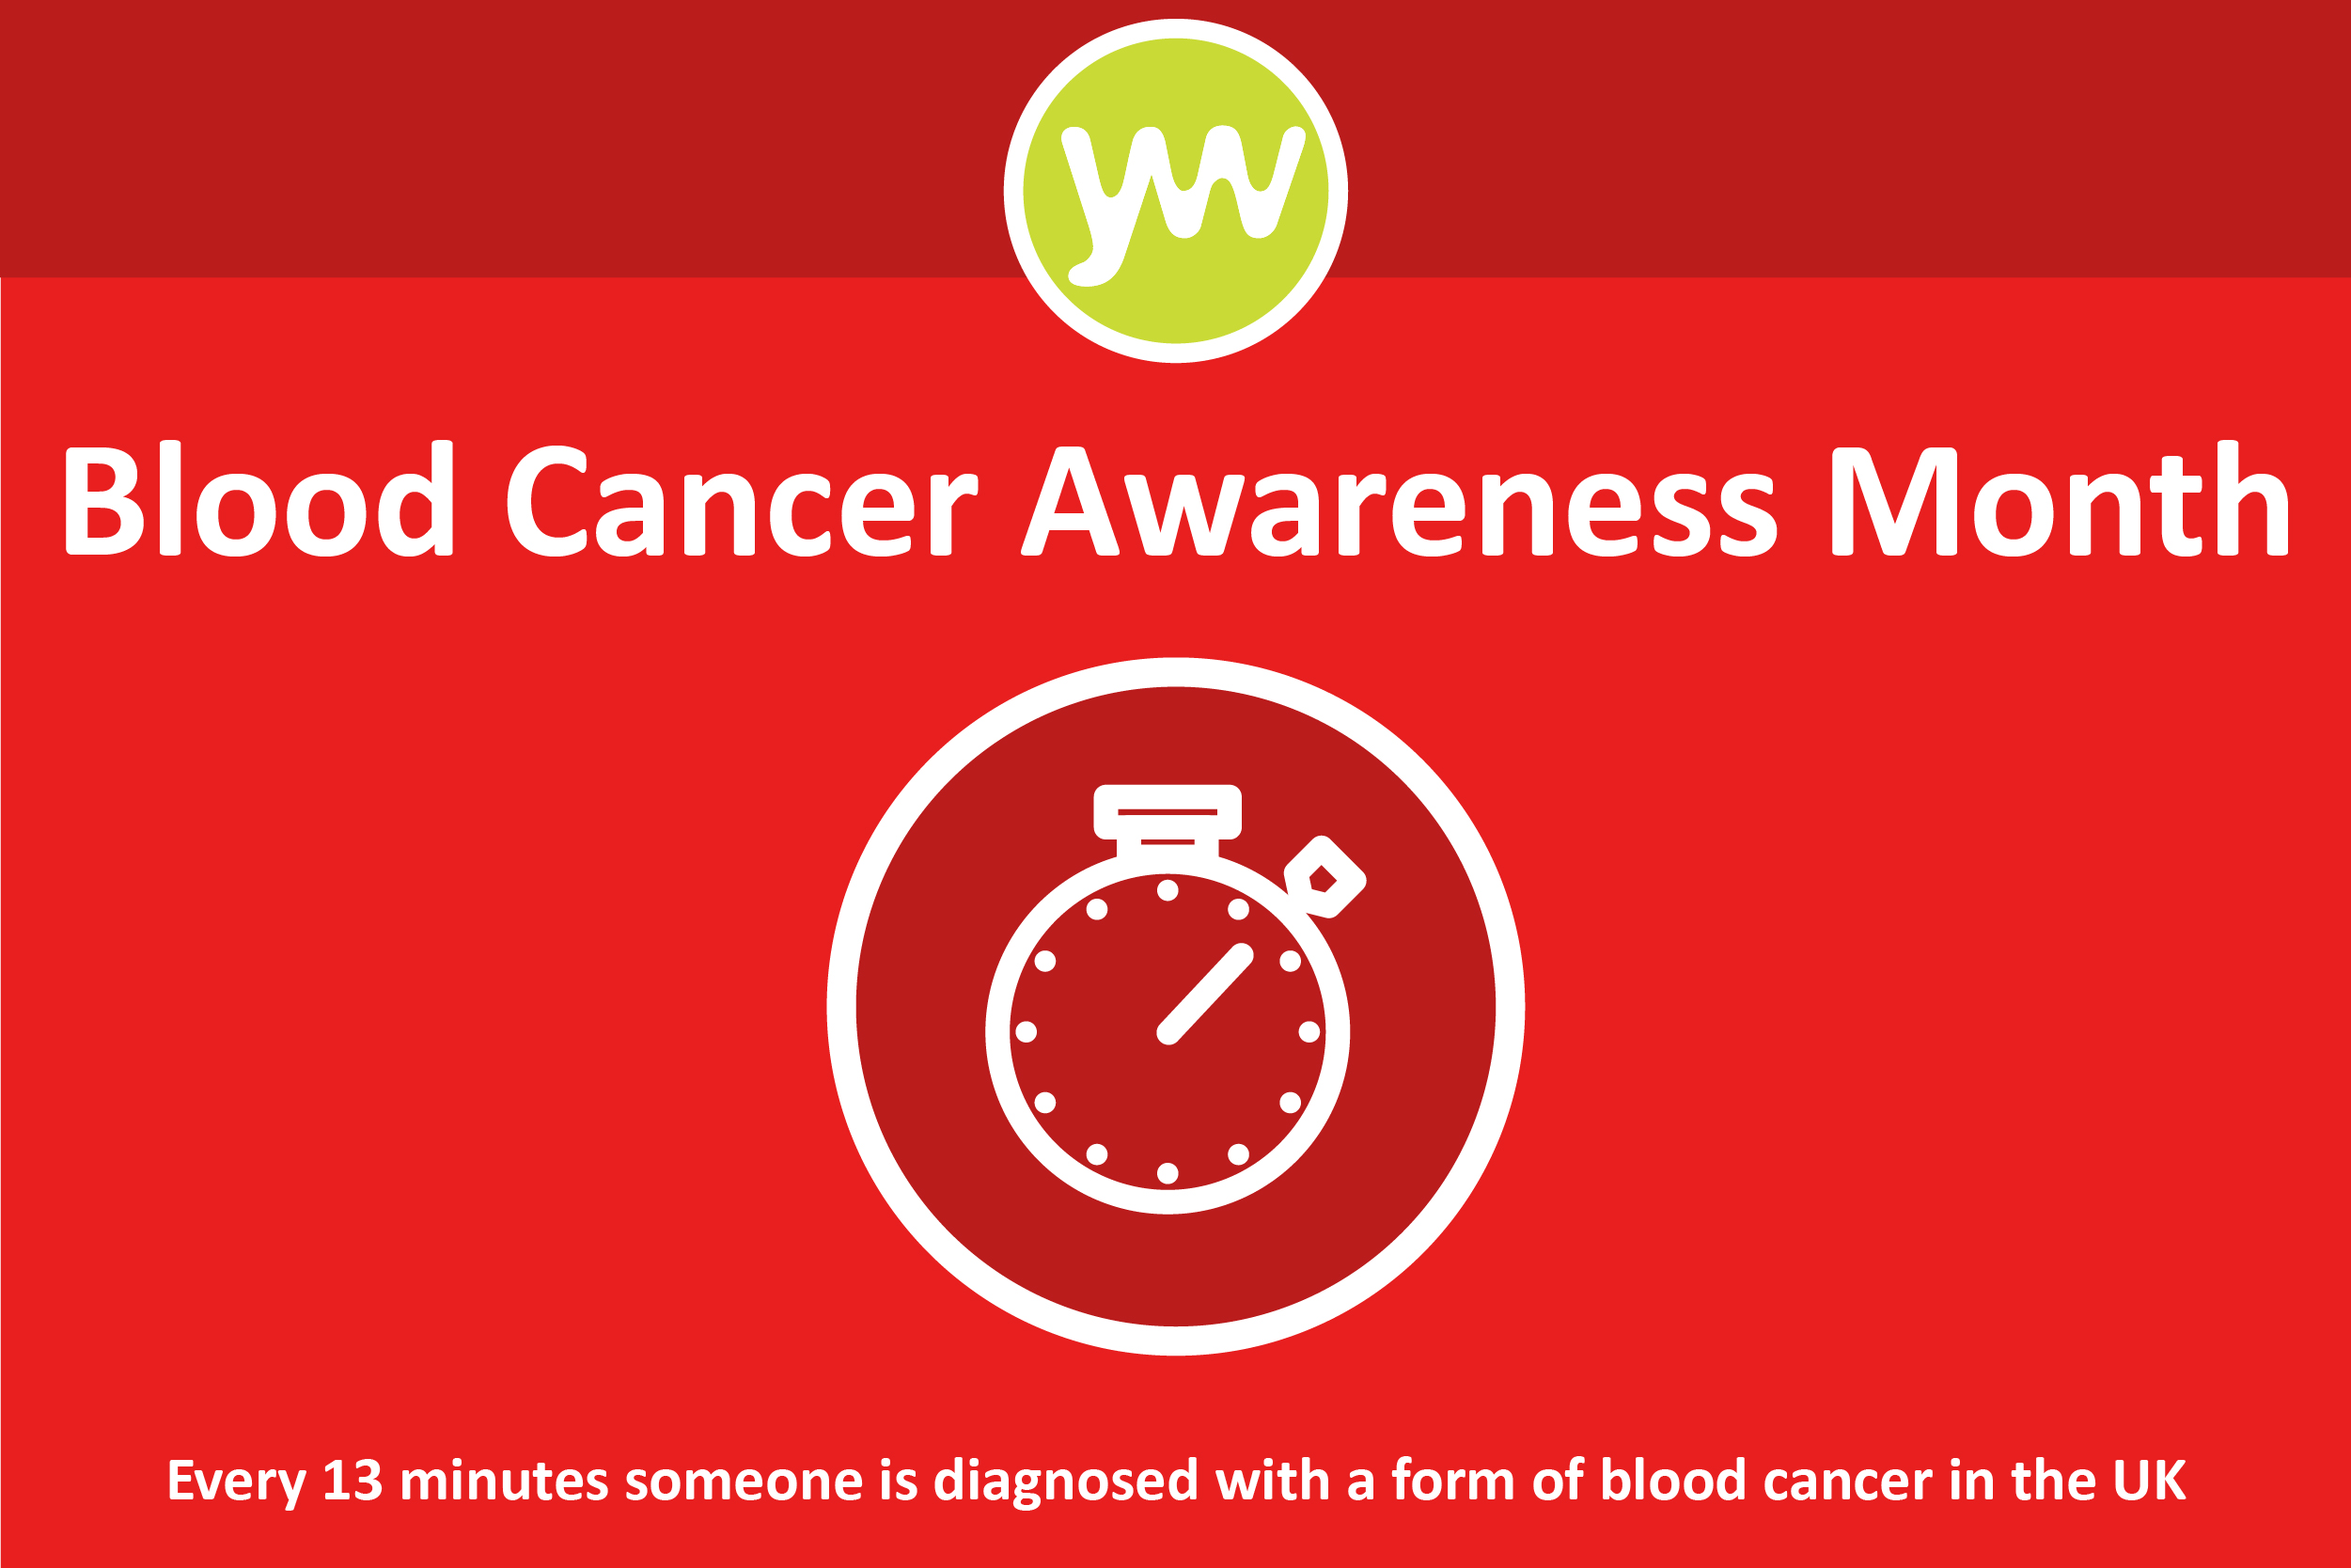 Blood Cancer Awareness Month – What Can You Do to Help?